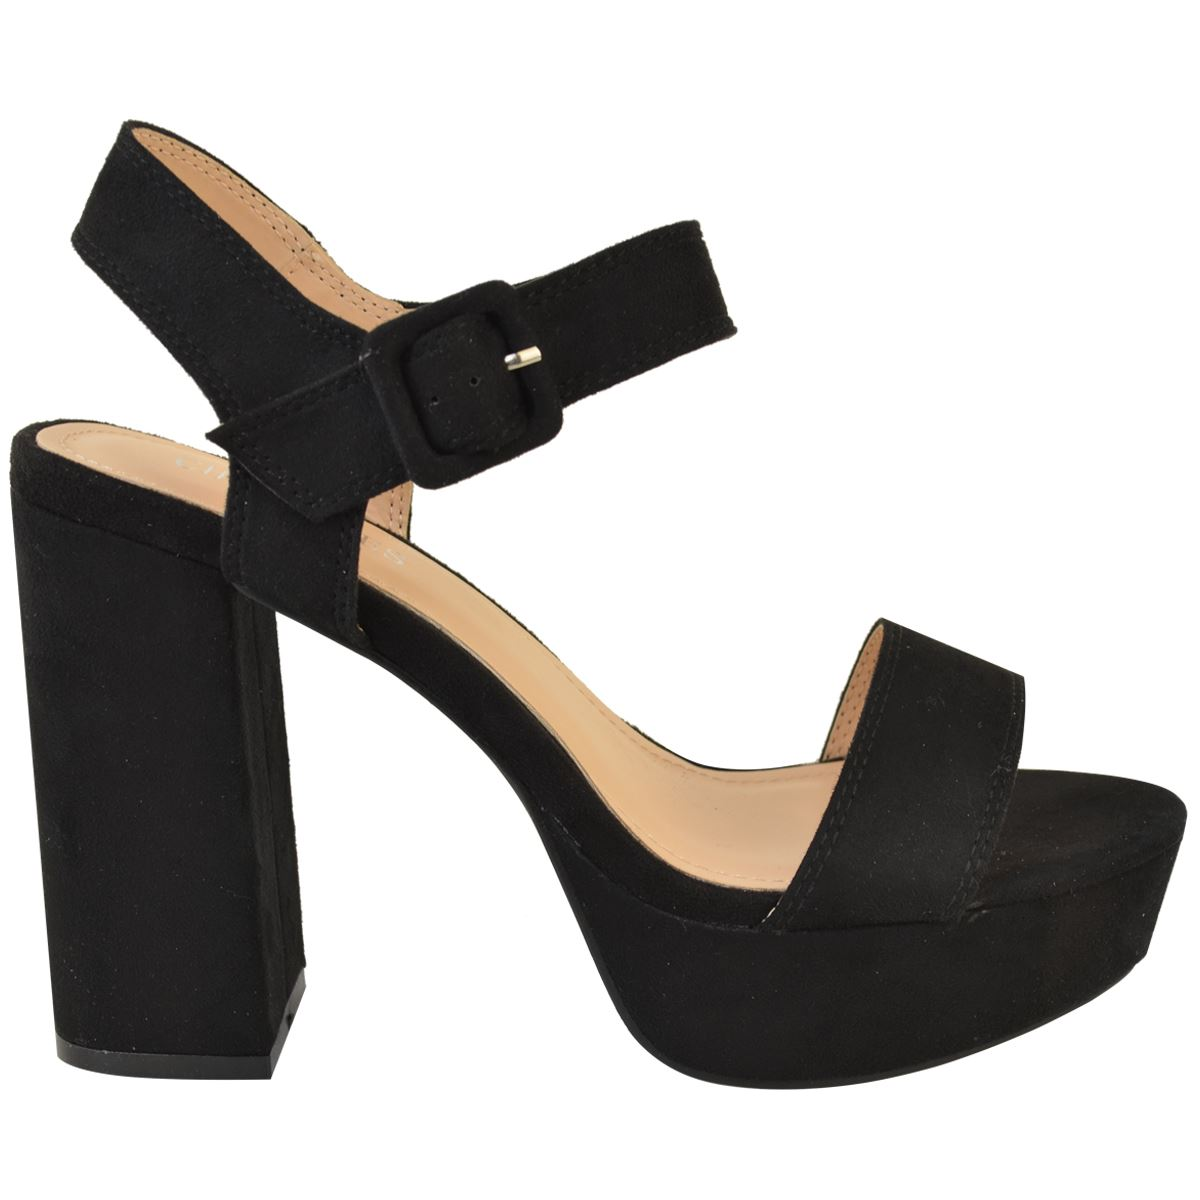 New-Womens-Summer-Platform-High-Heel-Sandals-Ladies-Open-Toe-Strappy-Party-Shoes thumbnail 24